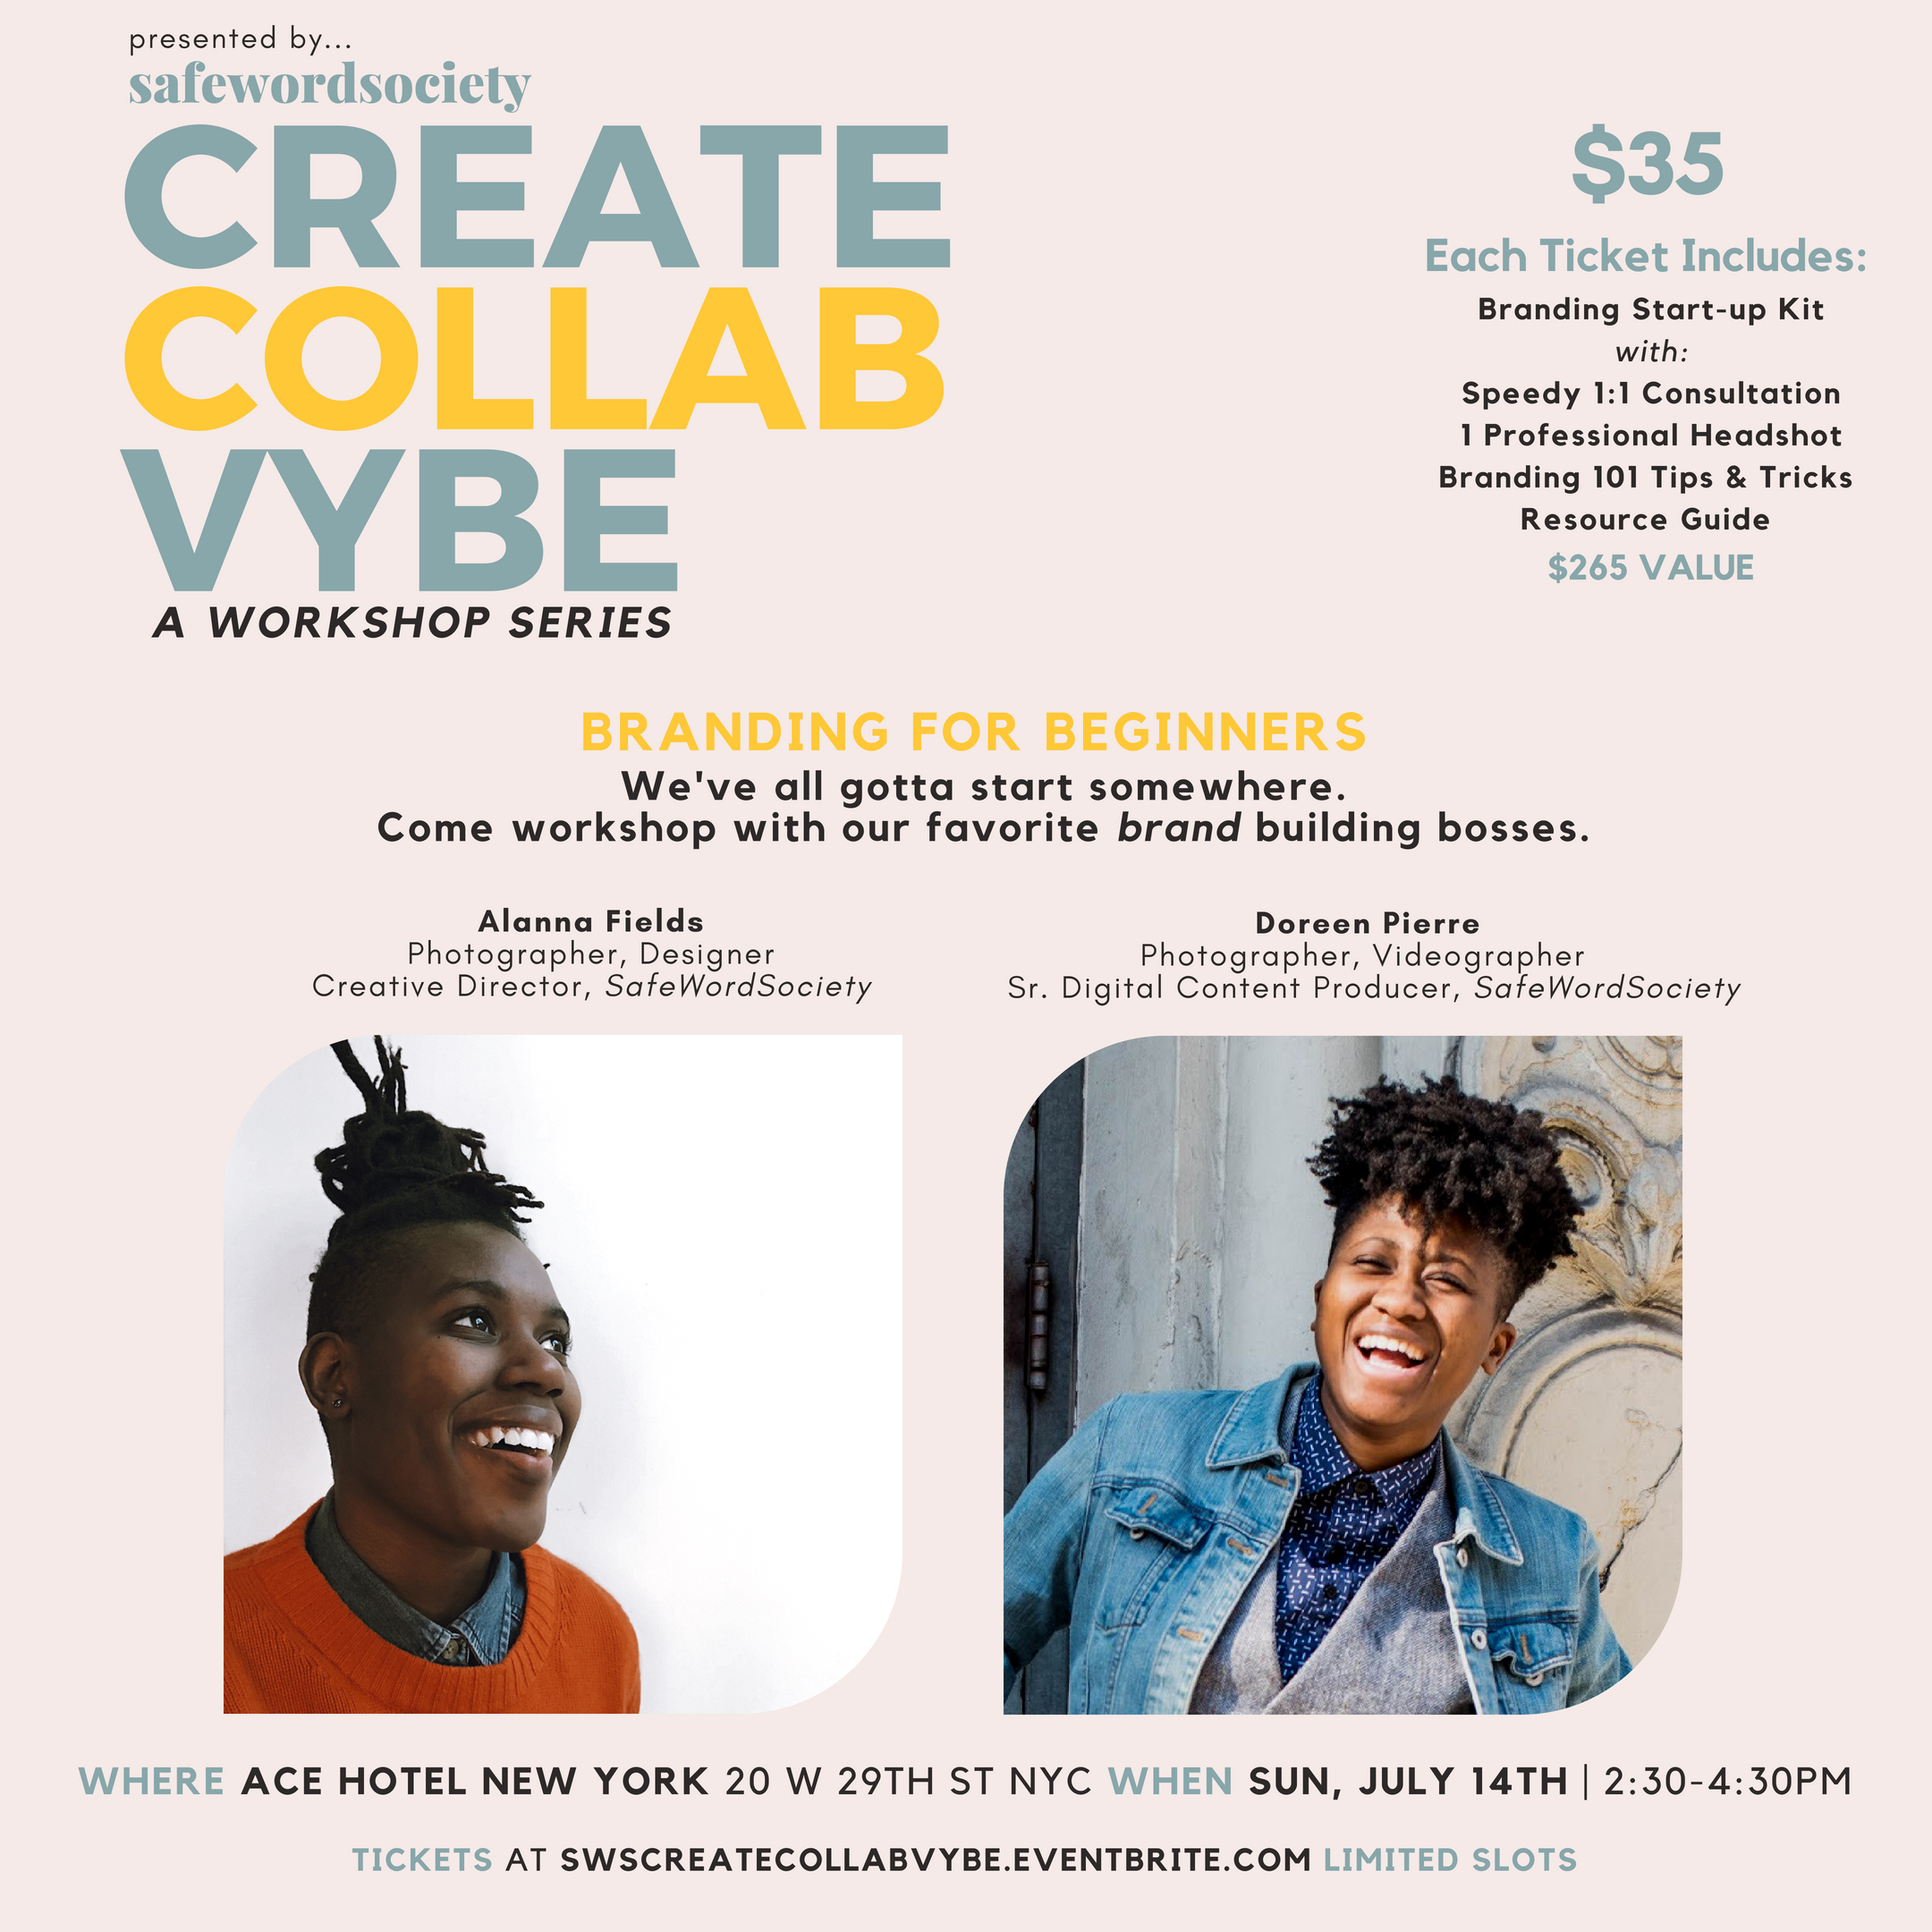 SafeWordSociety _CreateCollabVybe Workshop.png